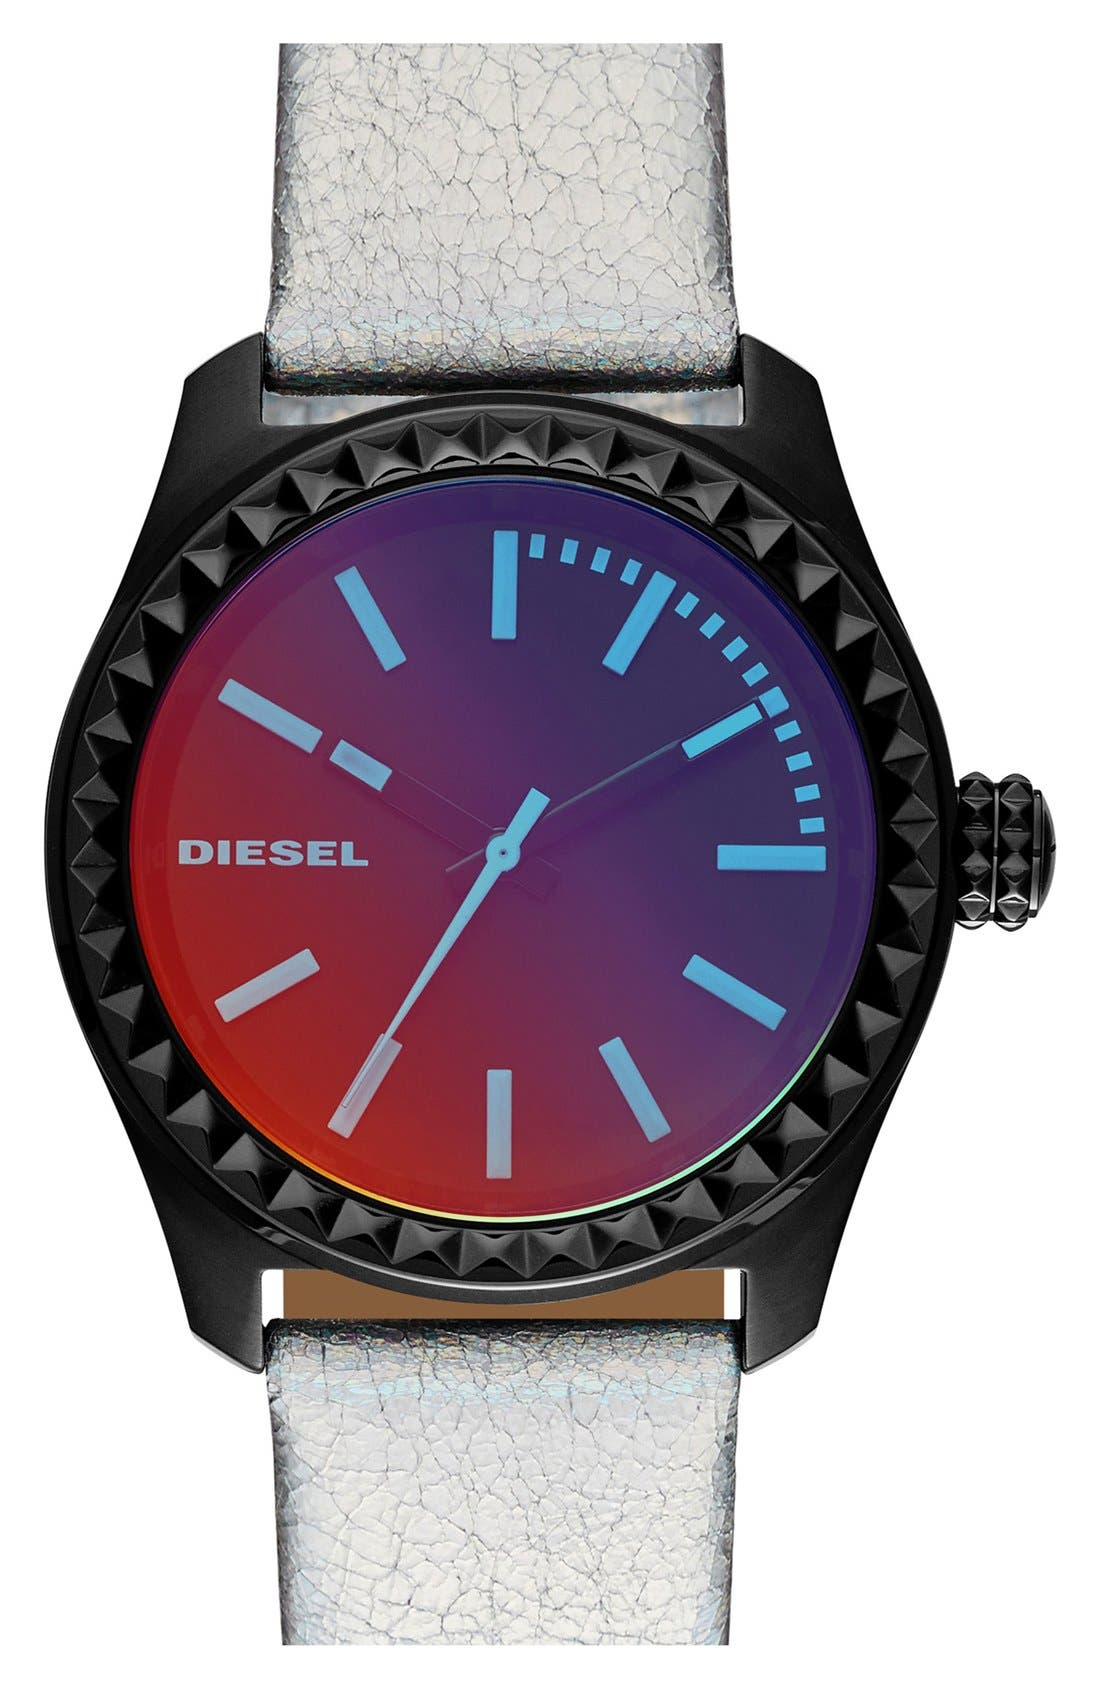 Alternate Image 1 Selected - DIESEL® 'Kray Kray' Iridescent Crystal Leather Strap Watch, 38mm